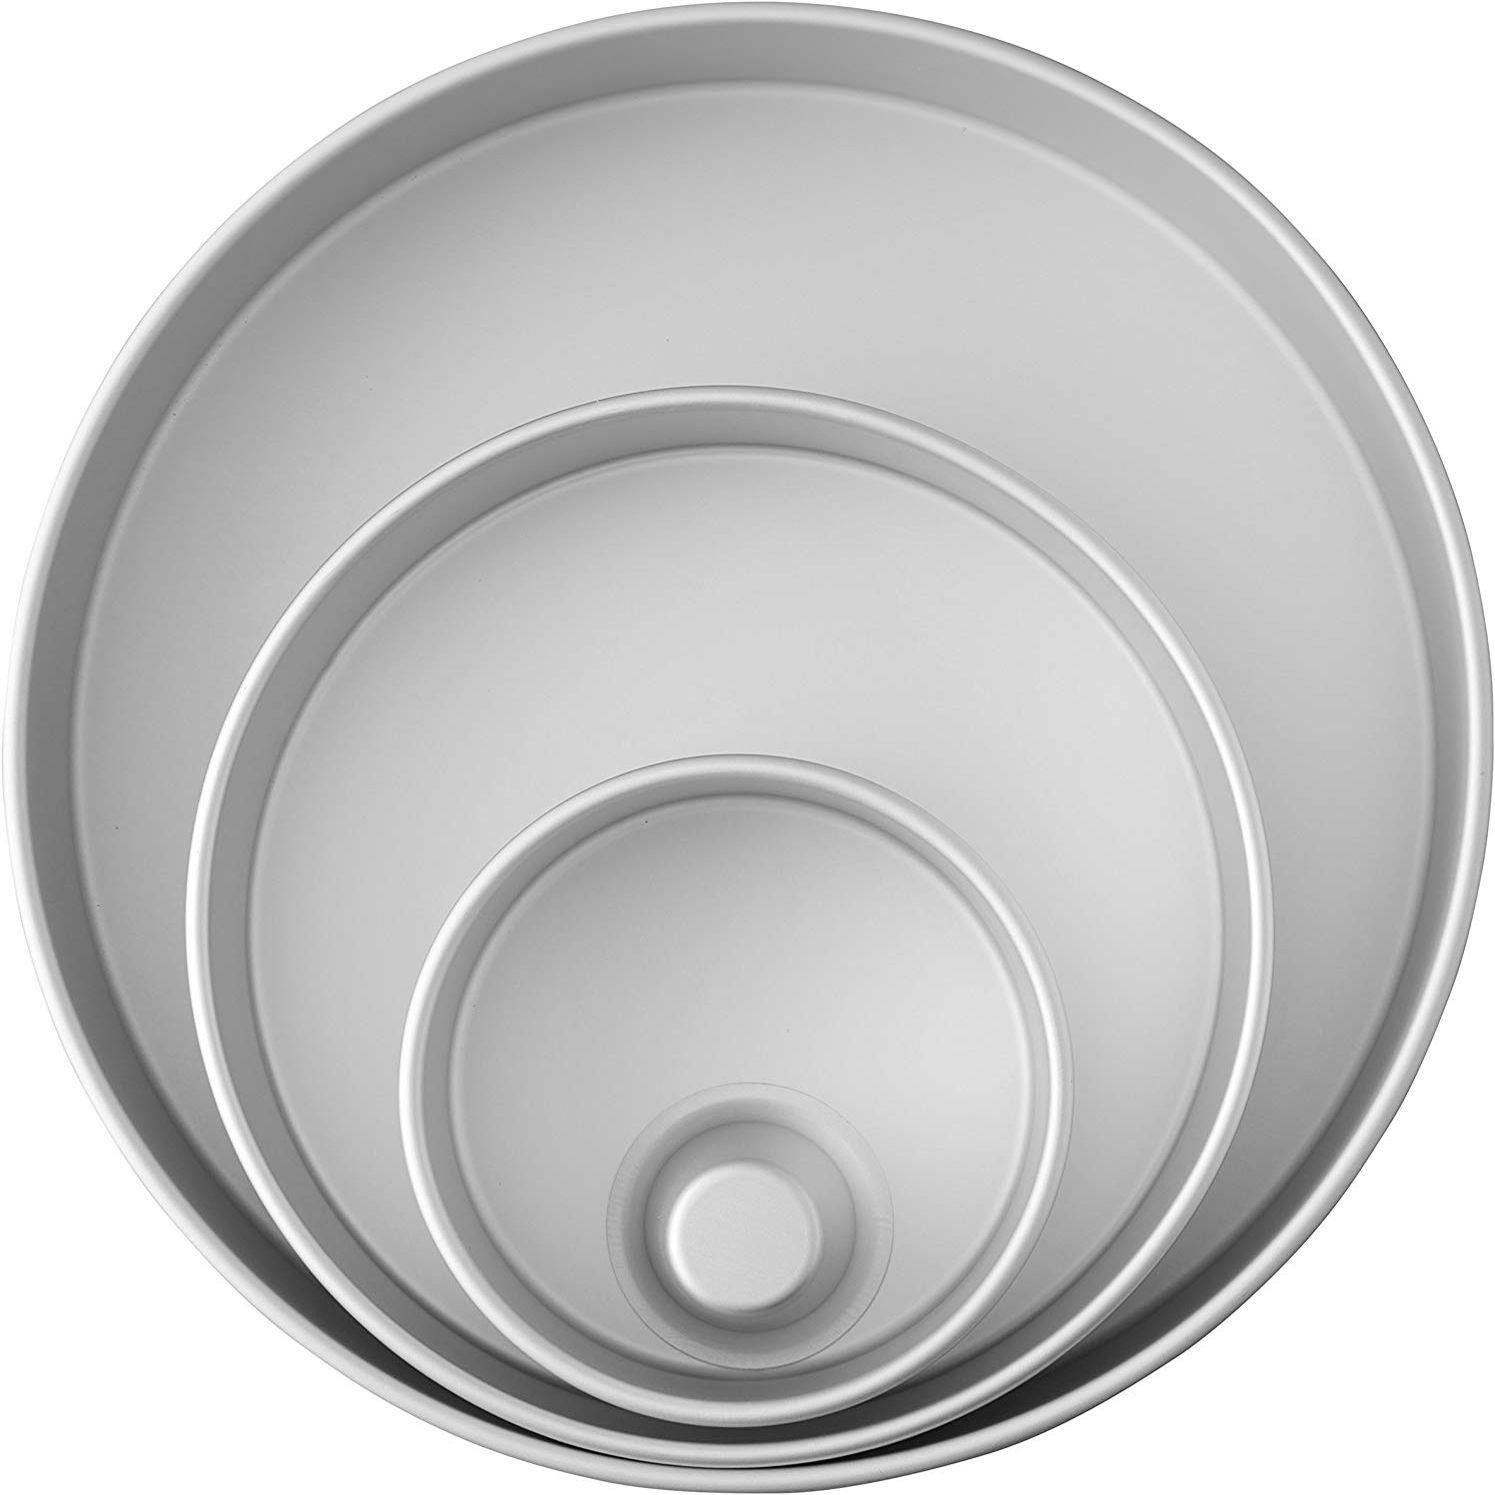 Wilton Decorator Preferred 4-piece Round Pan Set